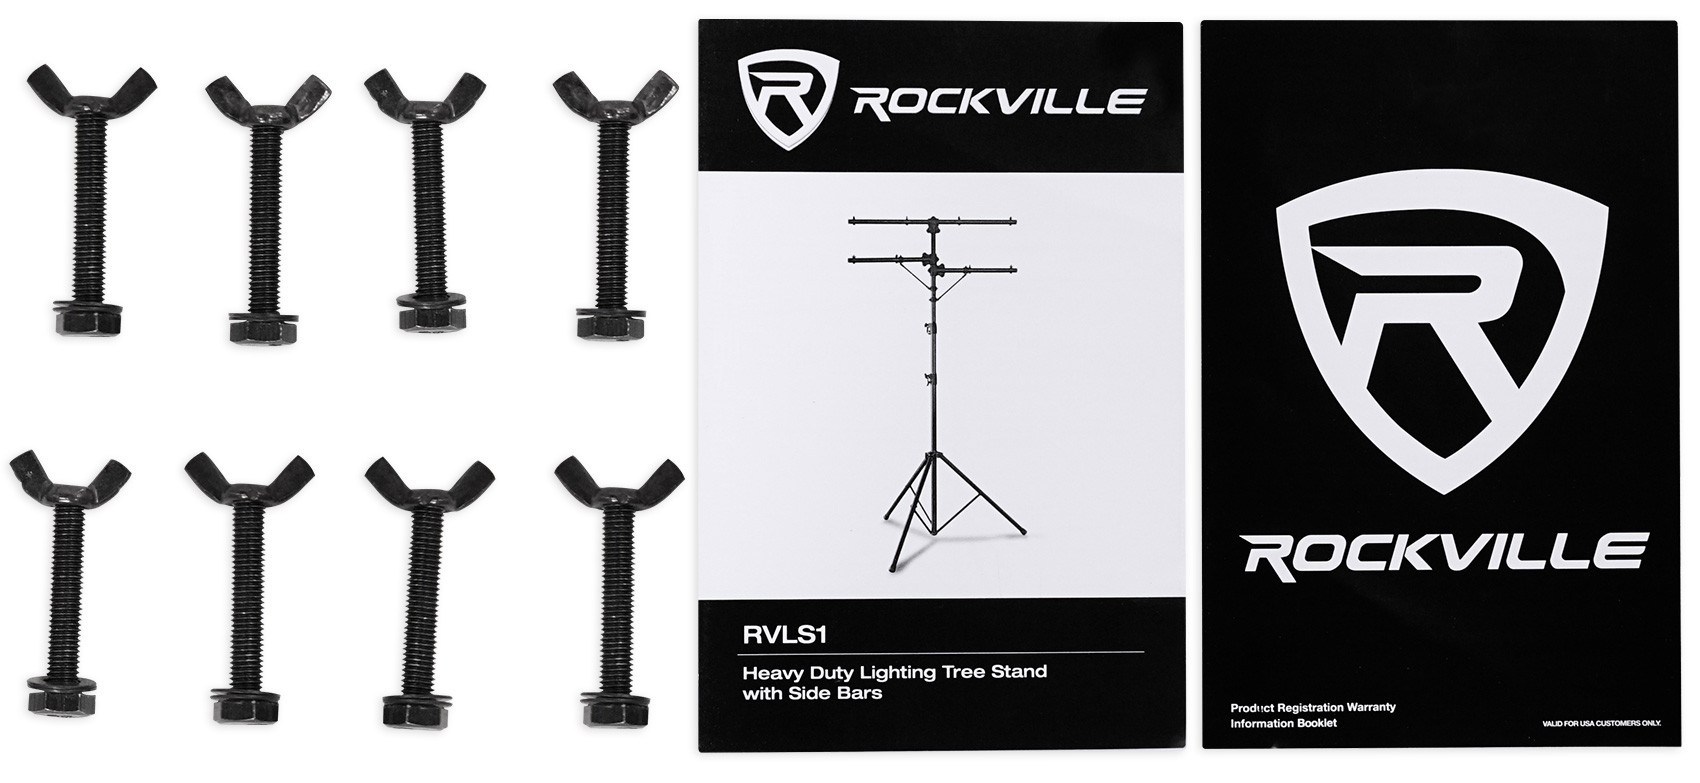 Pair Rockville Rvls1 Tripod Lighting Stands Wside Bars 8